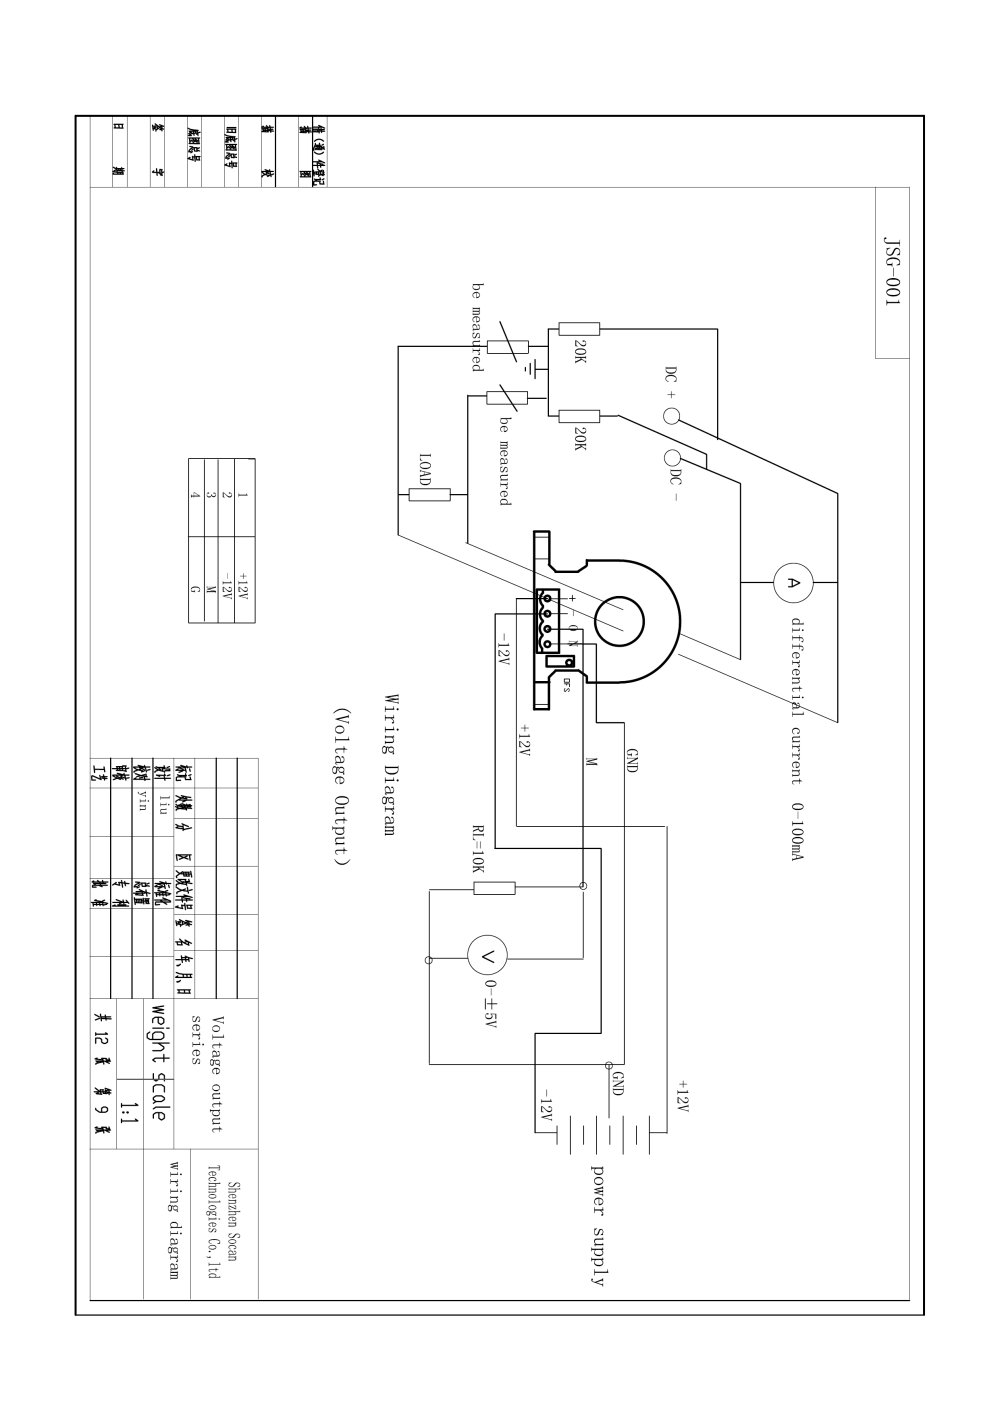 aiphone lef 3 wiring diagram   28 wiring diagram images